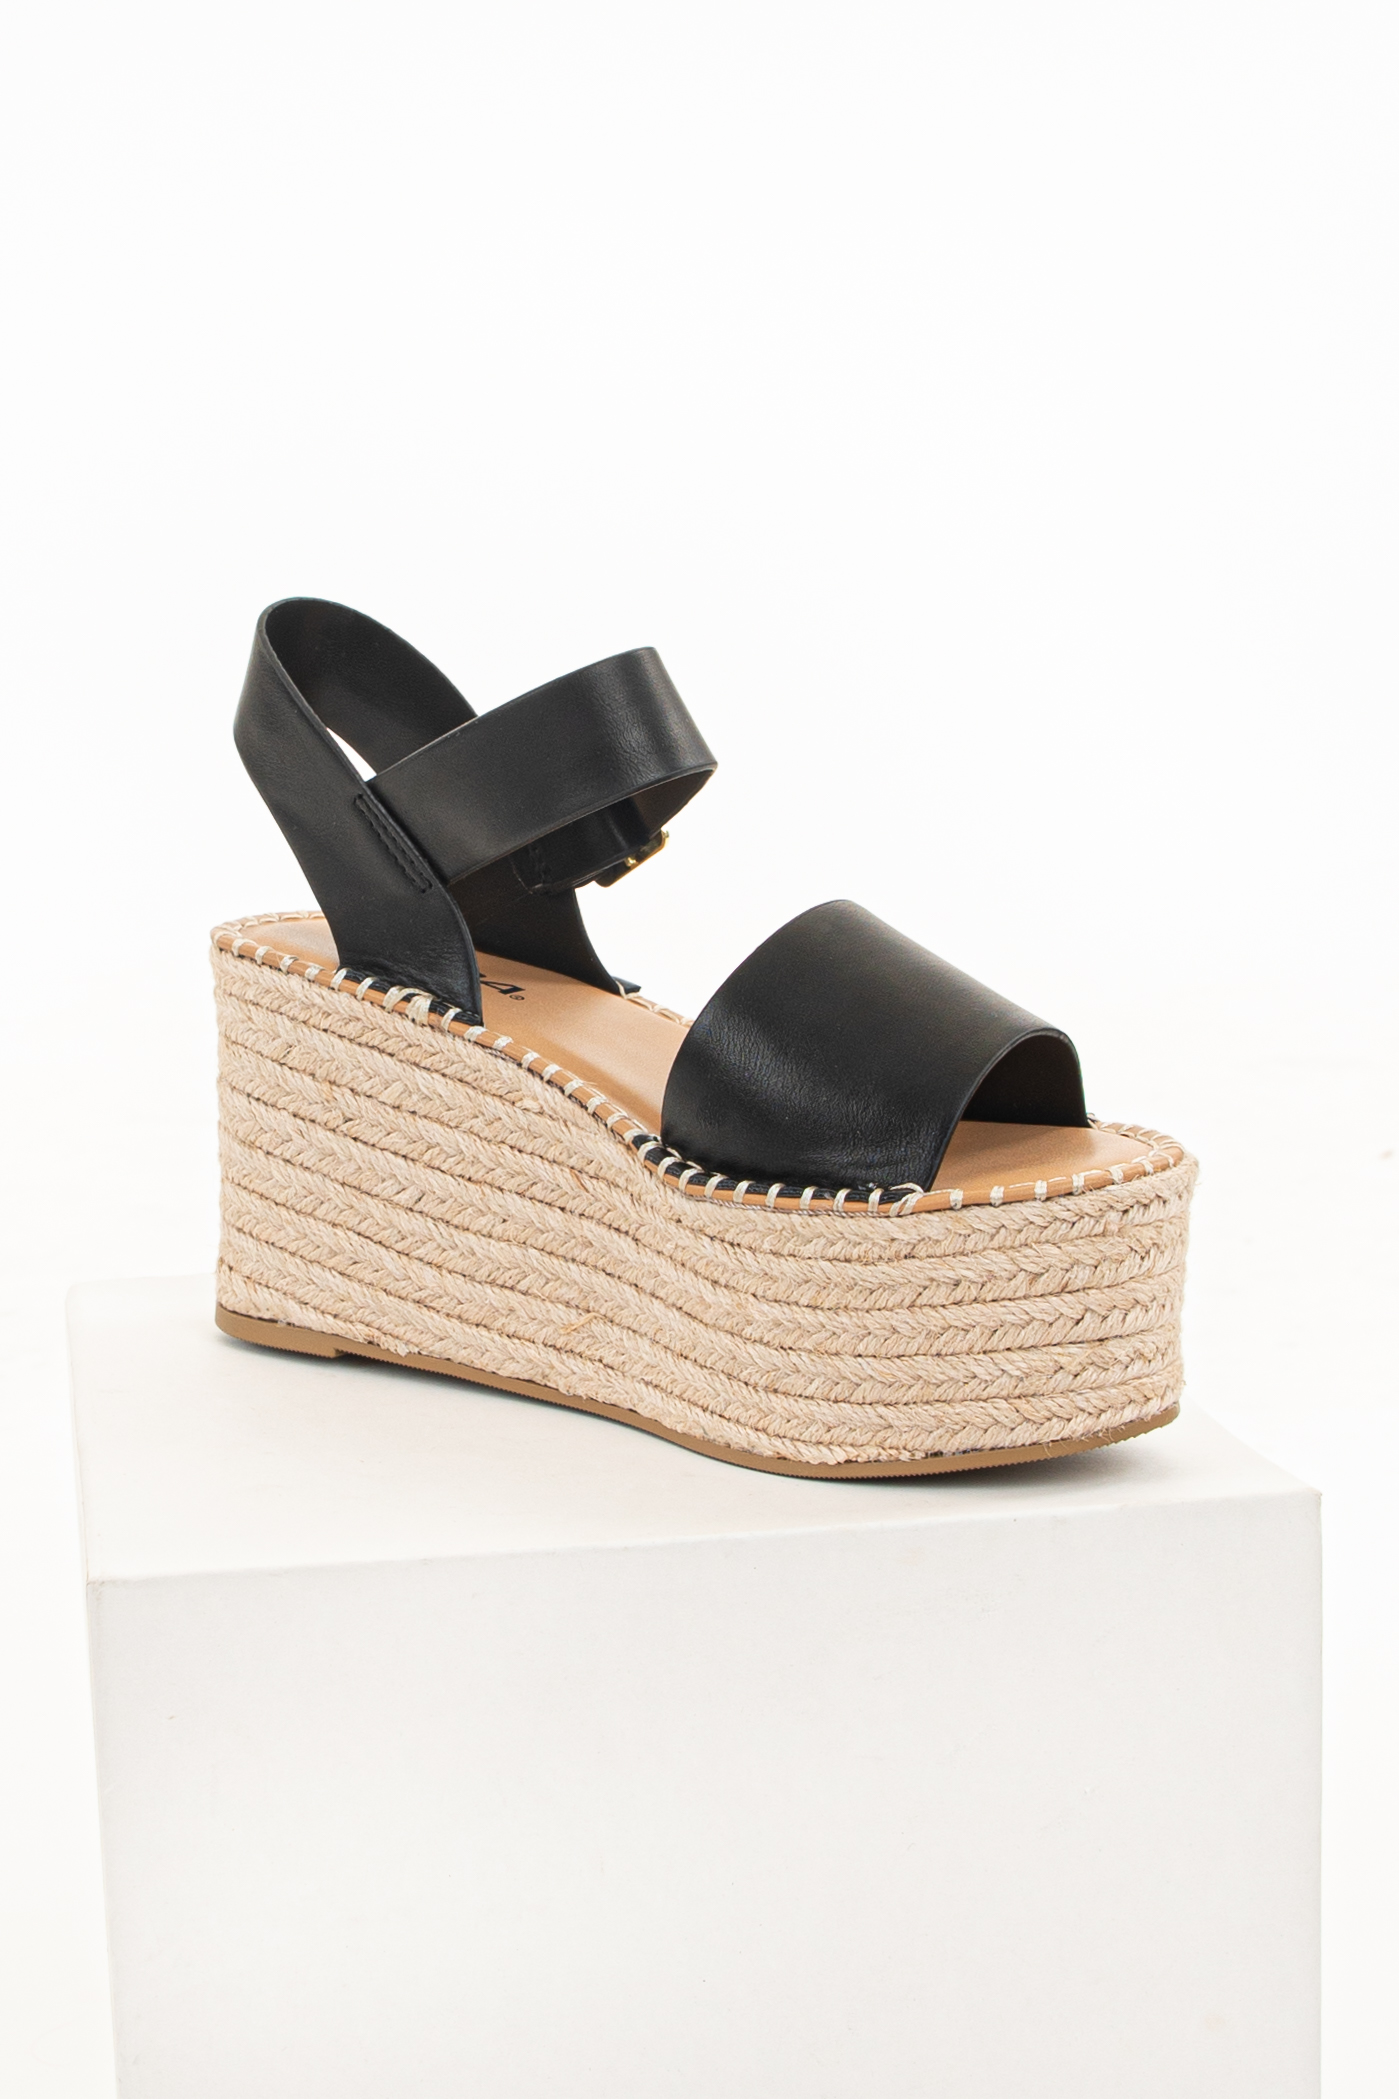 Black Faux Leather Espadrille Wedge Sandals with Buckle